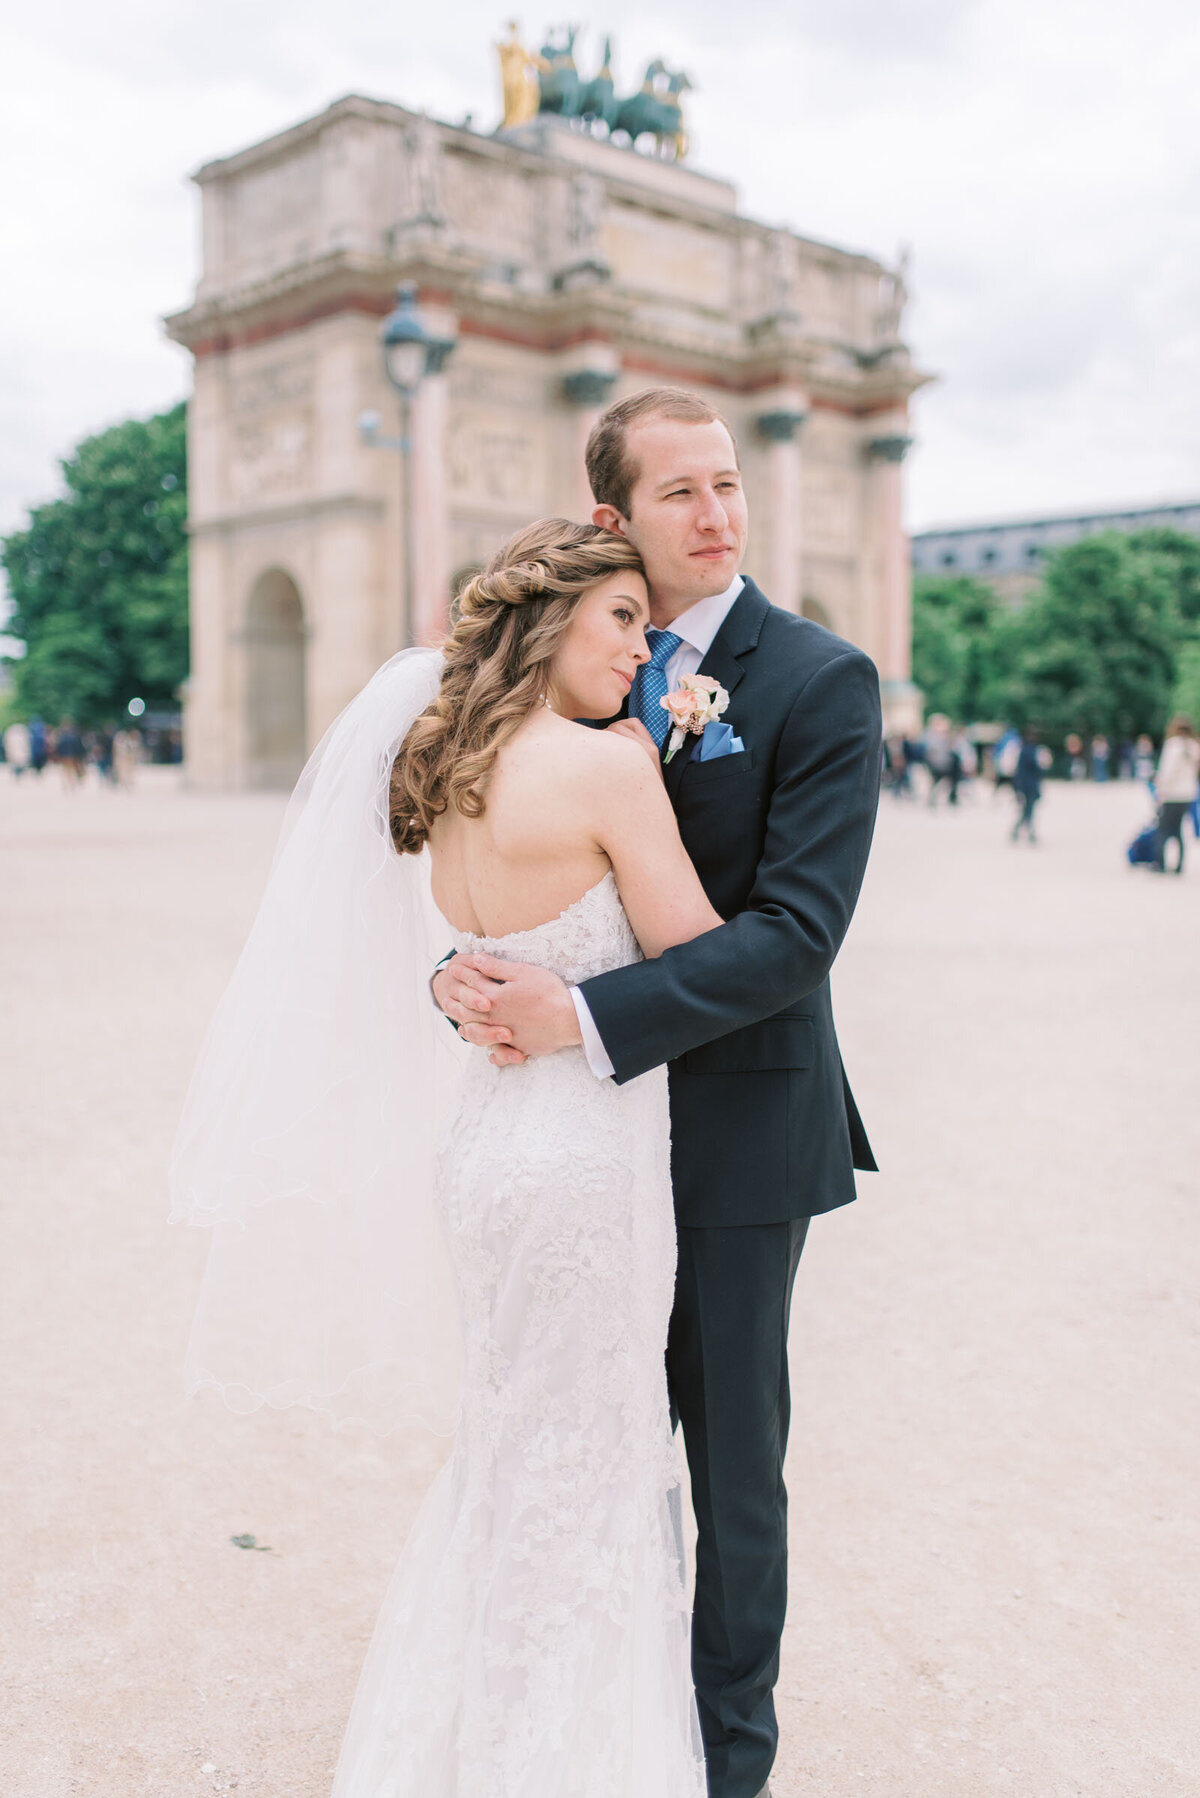 marcelaploskerphotography-paris_wedding-54